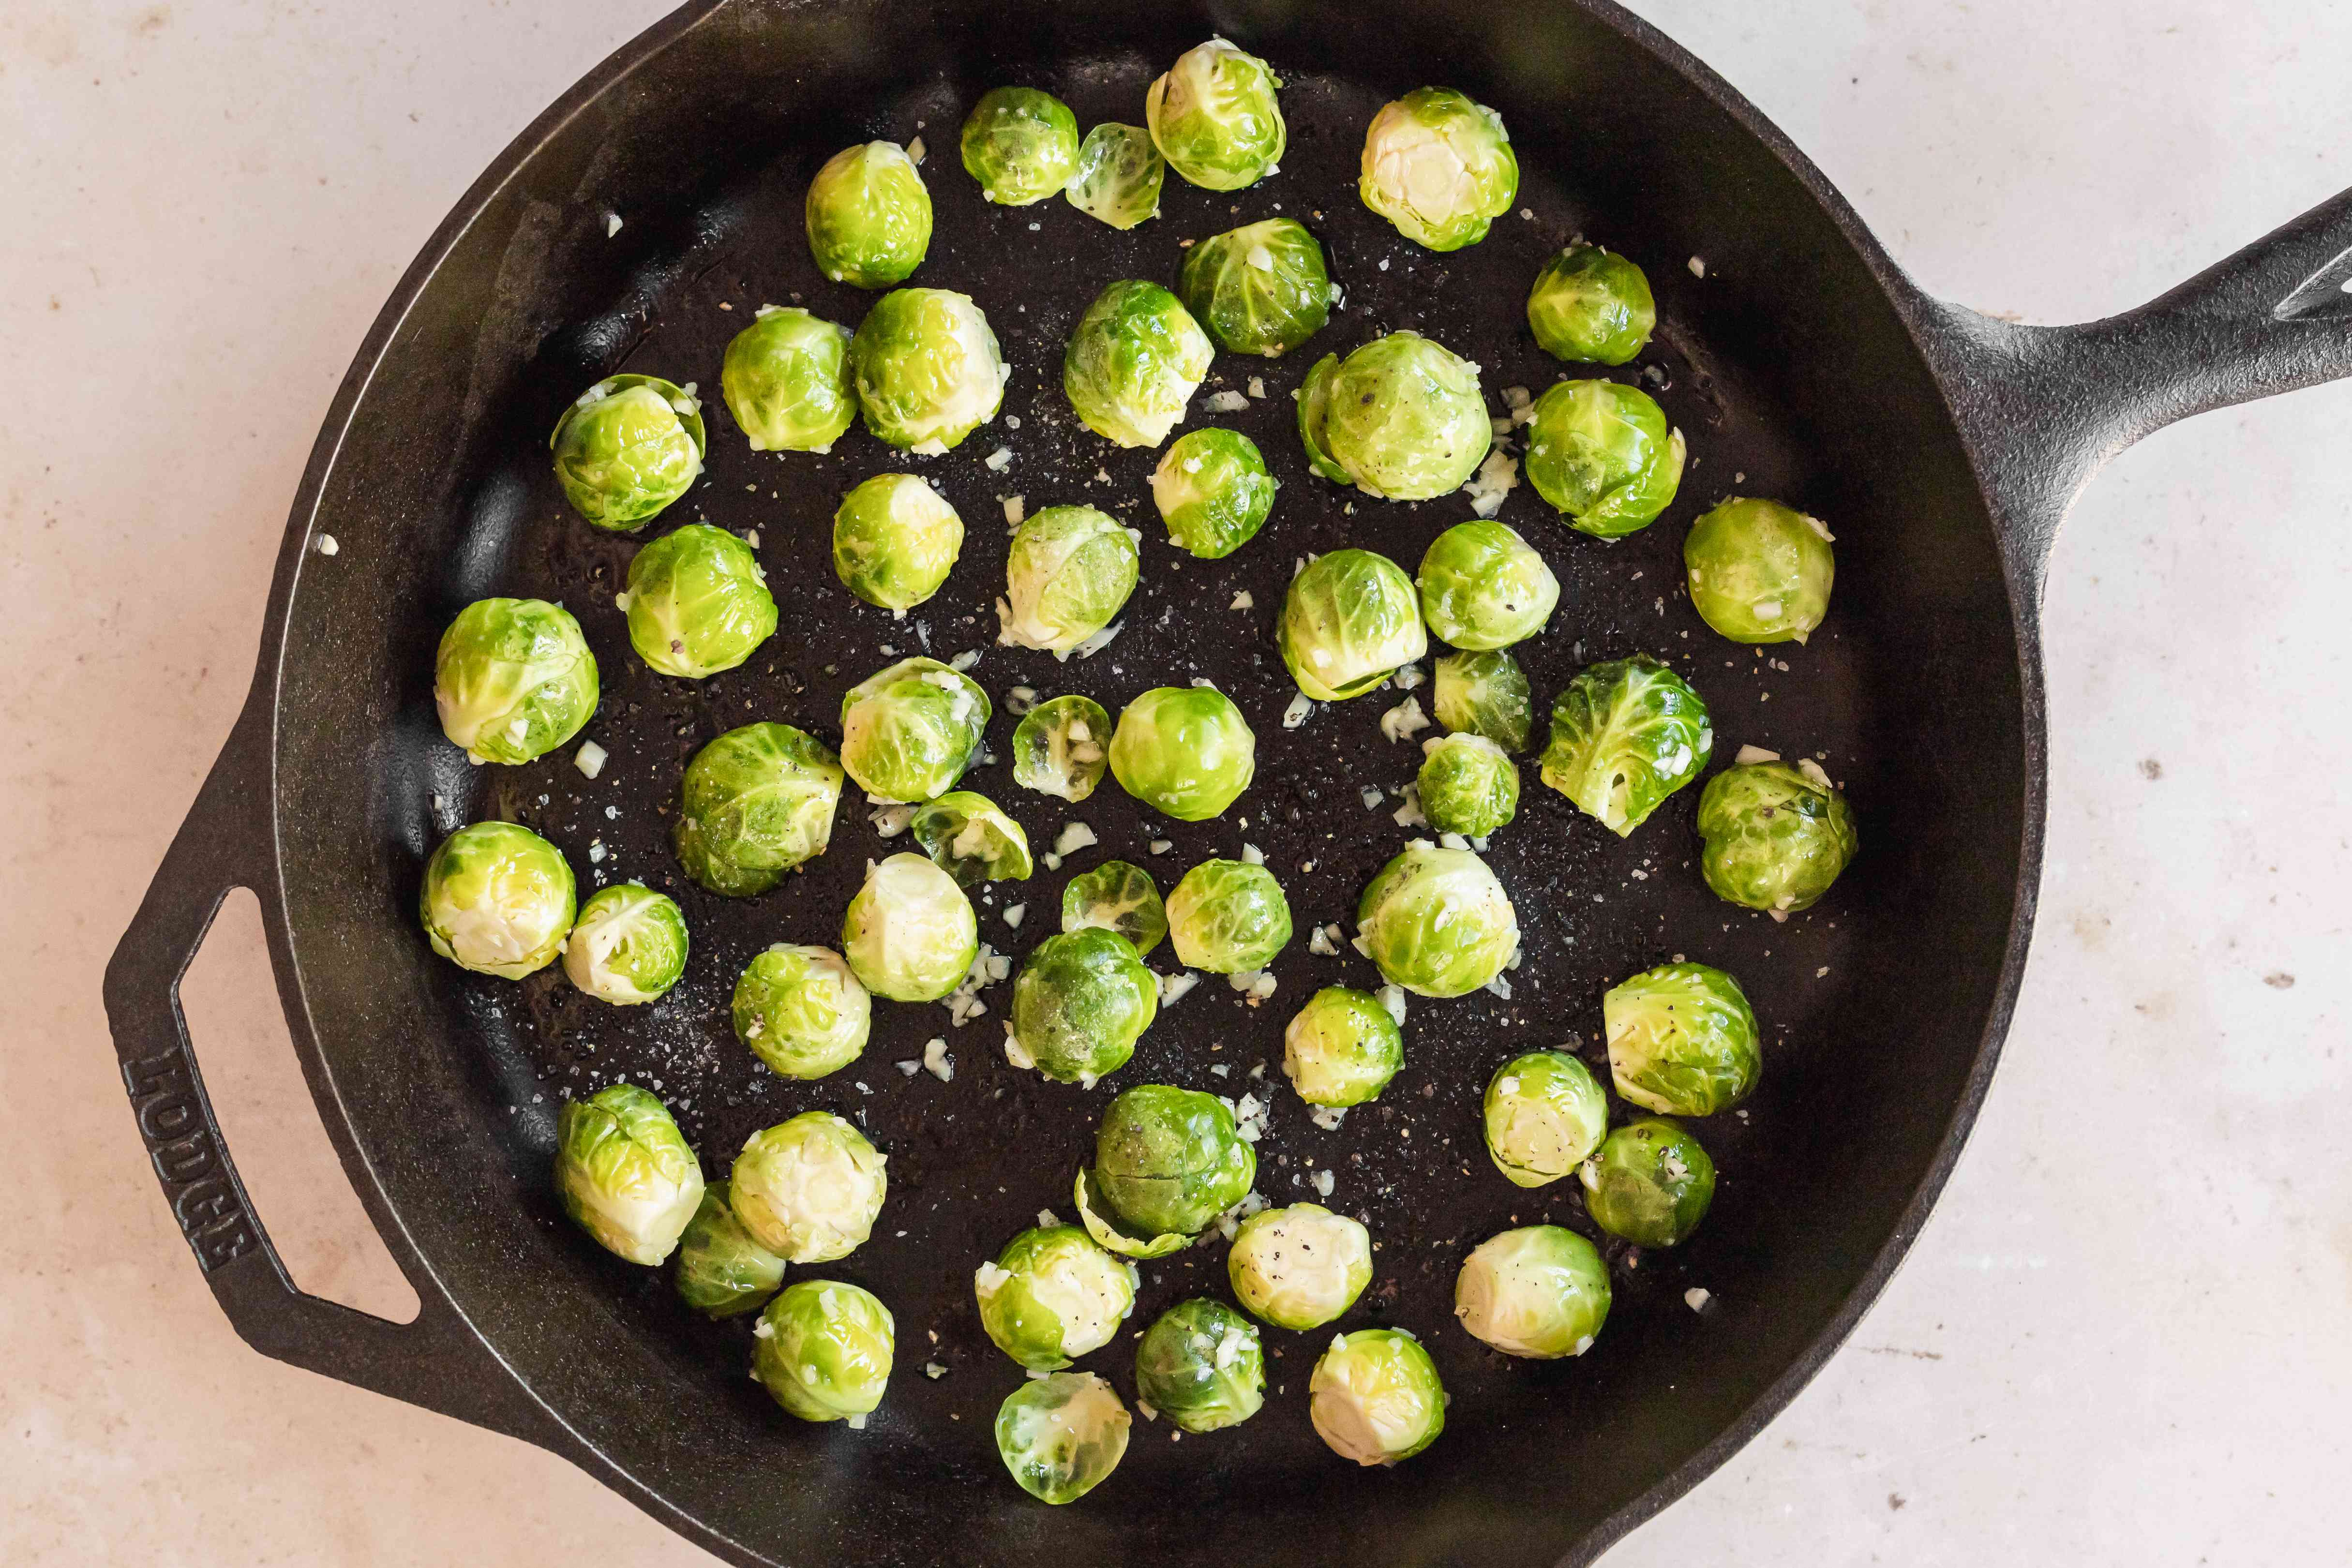 Overhead view of a cast iron skillet to show how to roast brussel sprouts.